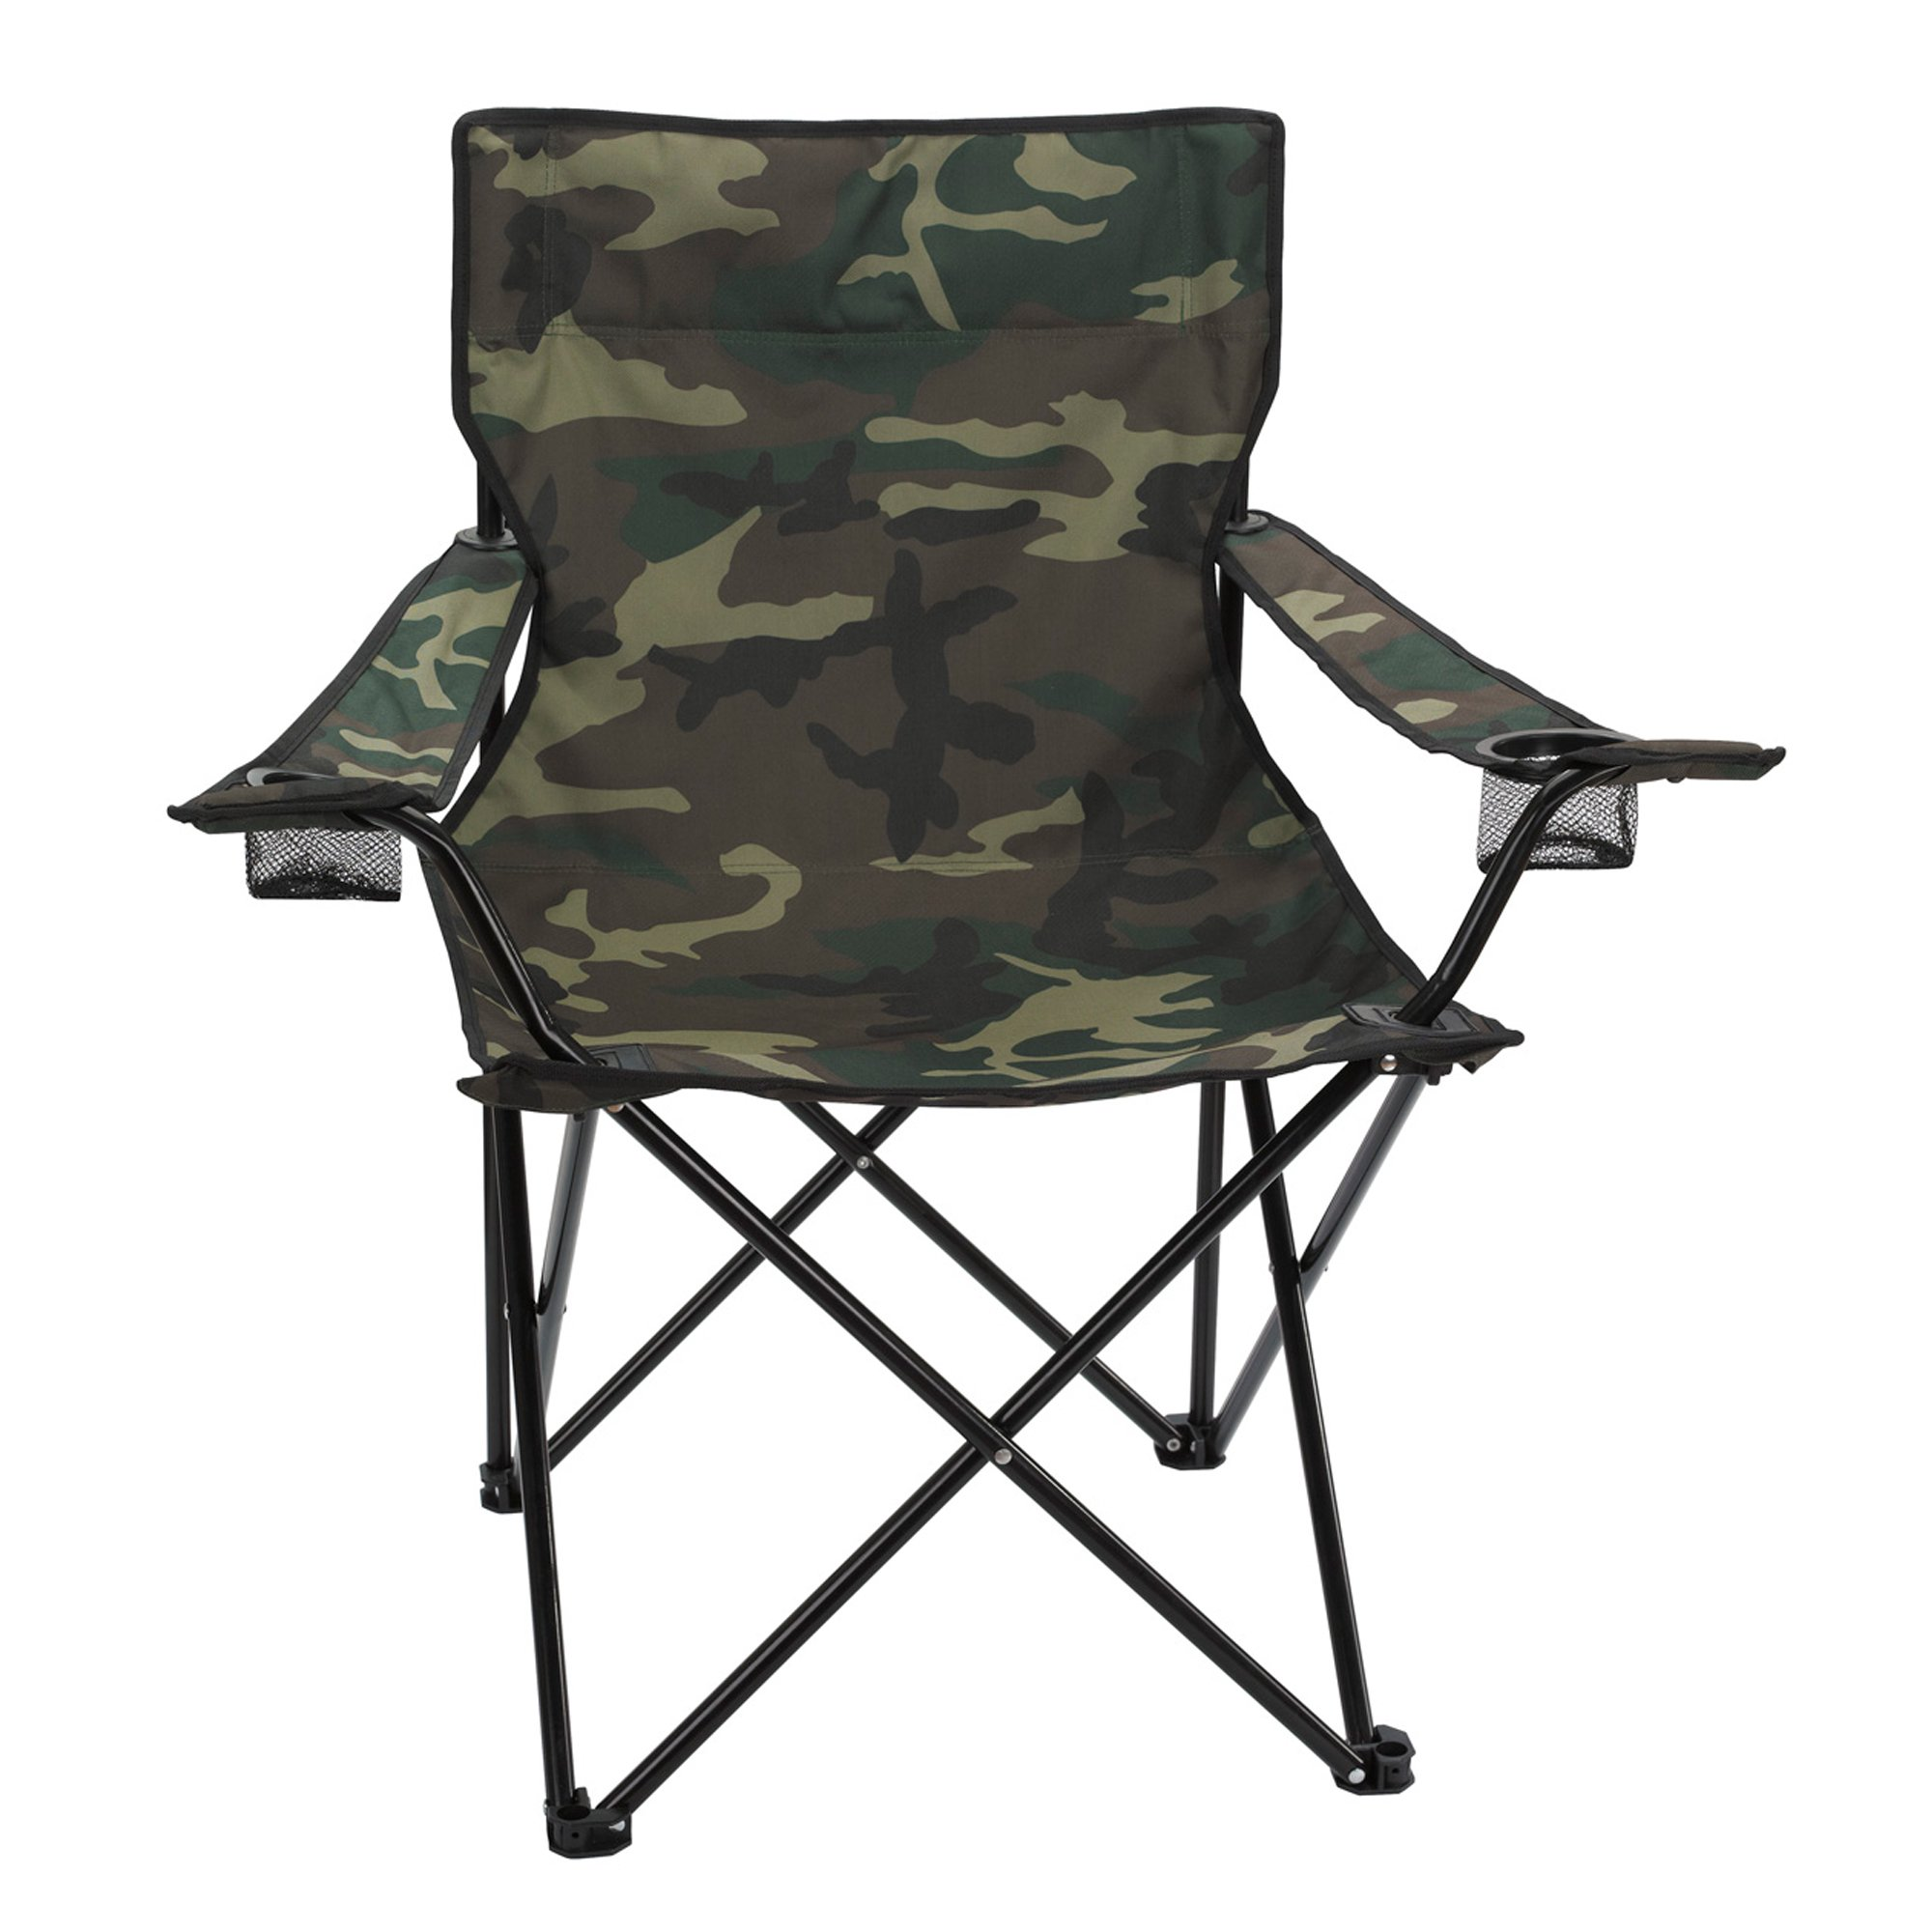 personalized folding chair foldable floor promotional camo with carrying bag